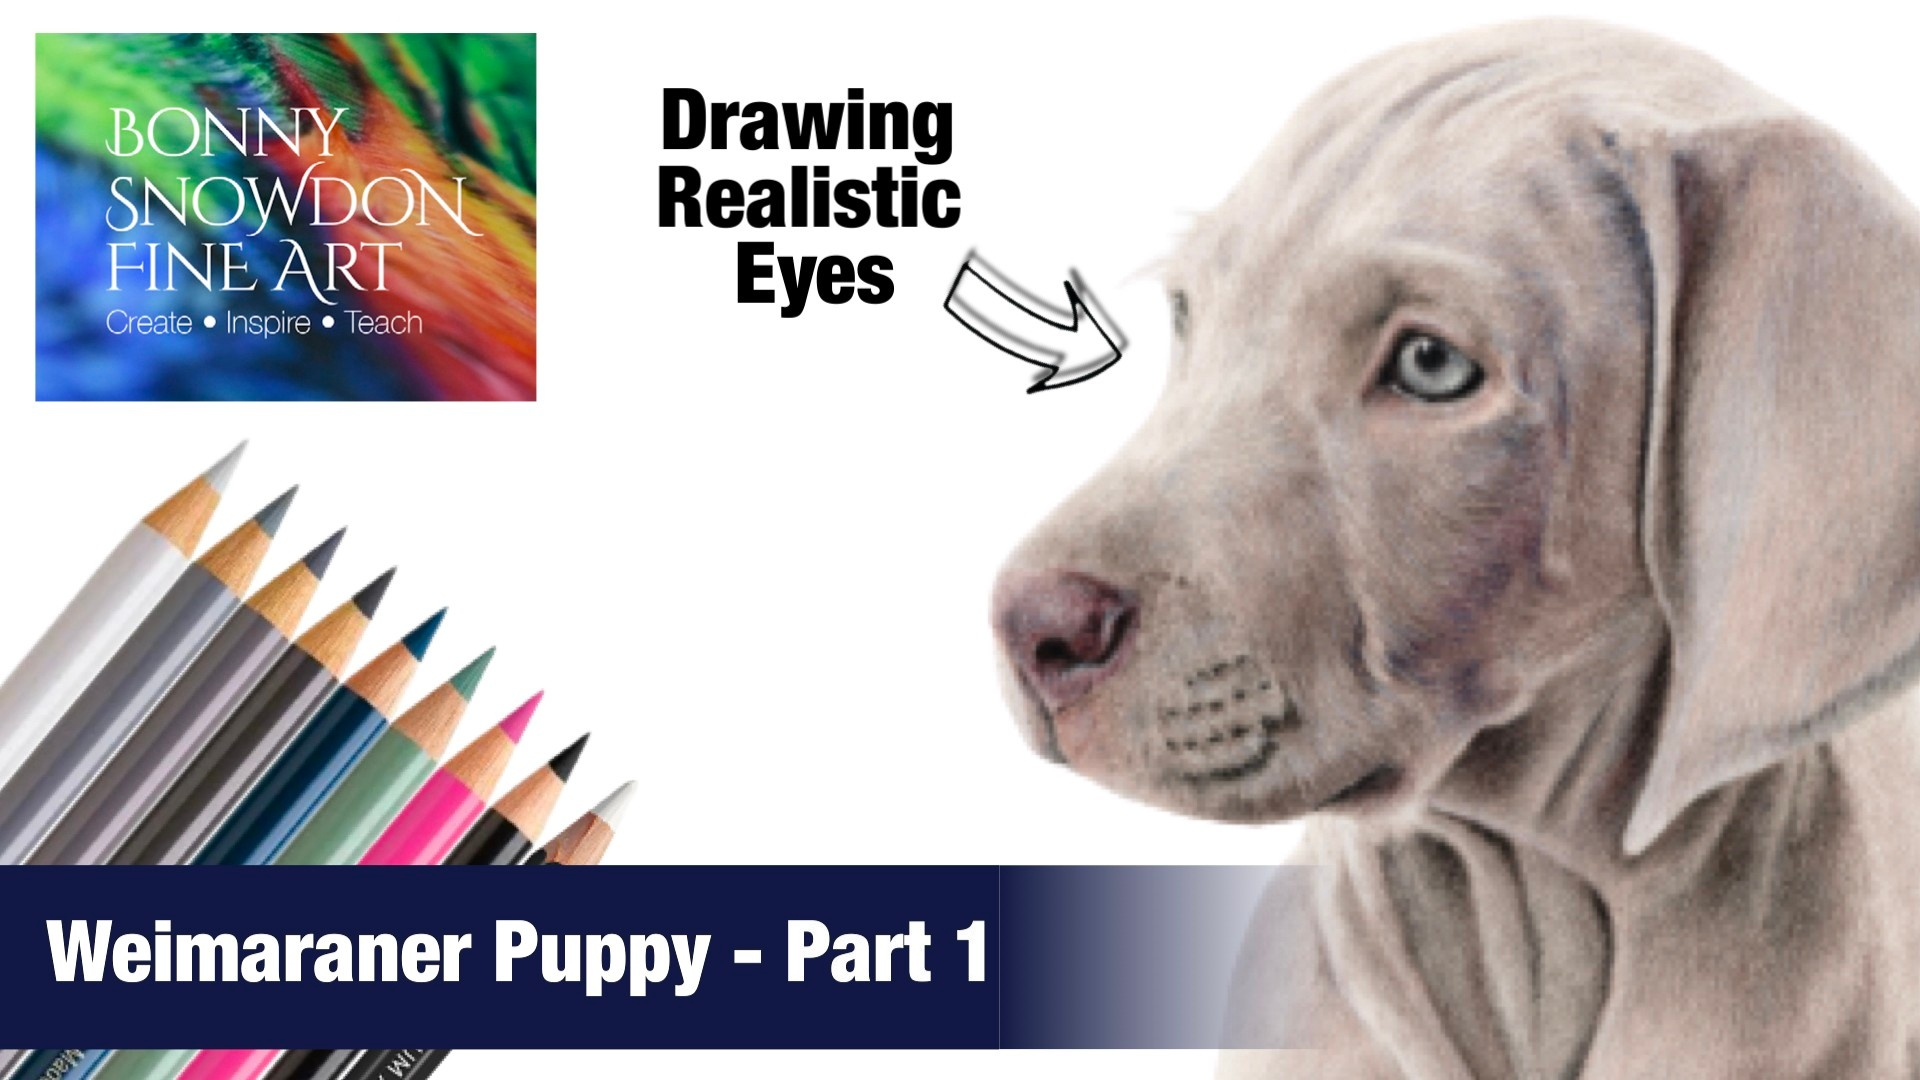 Drawing a Weimaraner in Coloured Pencils - YouTube - Bonny Snowdon Fine Art